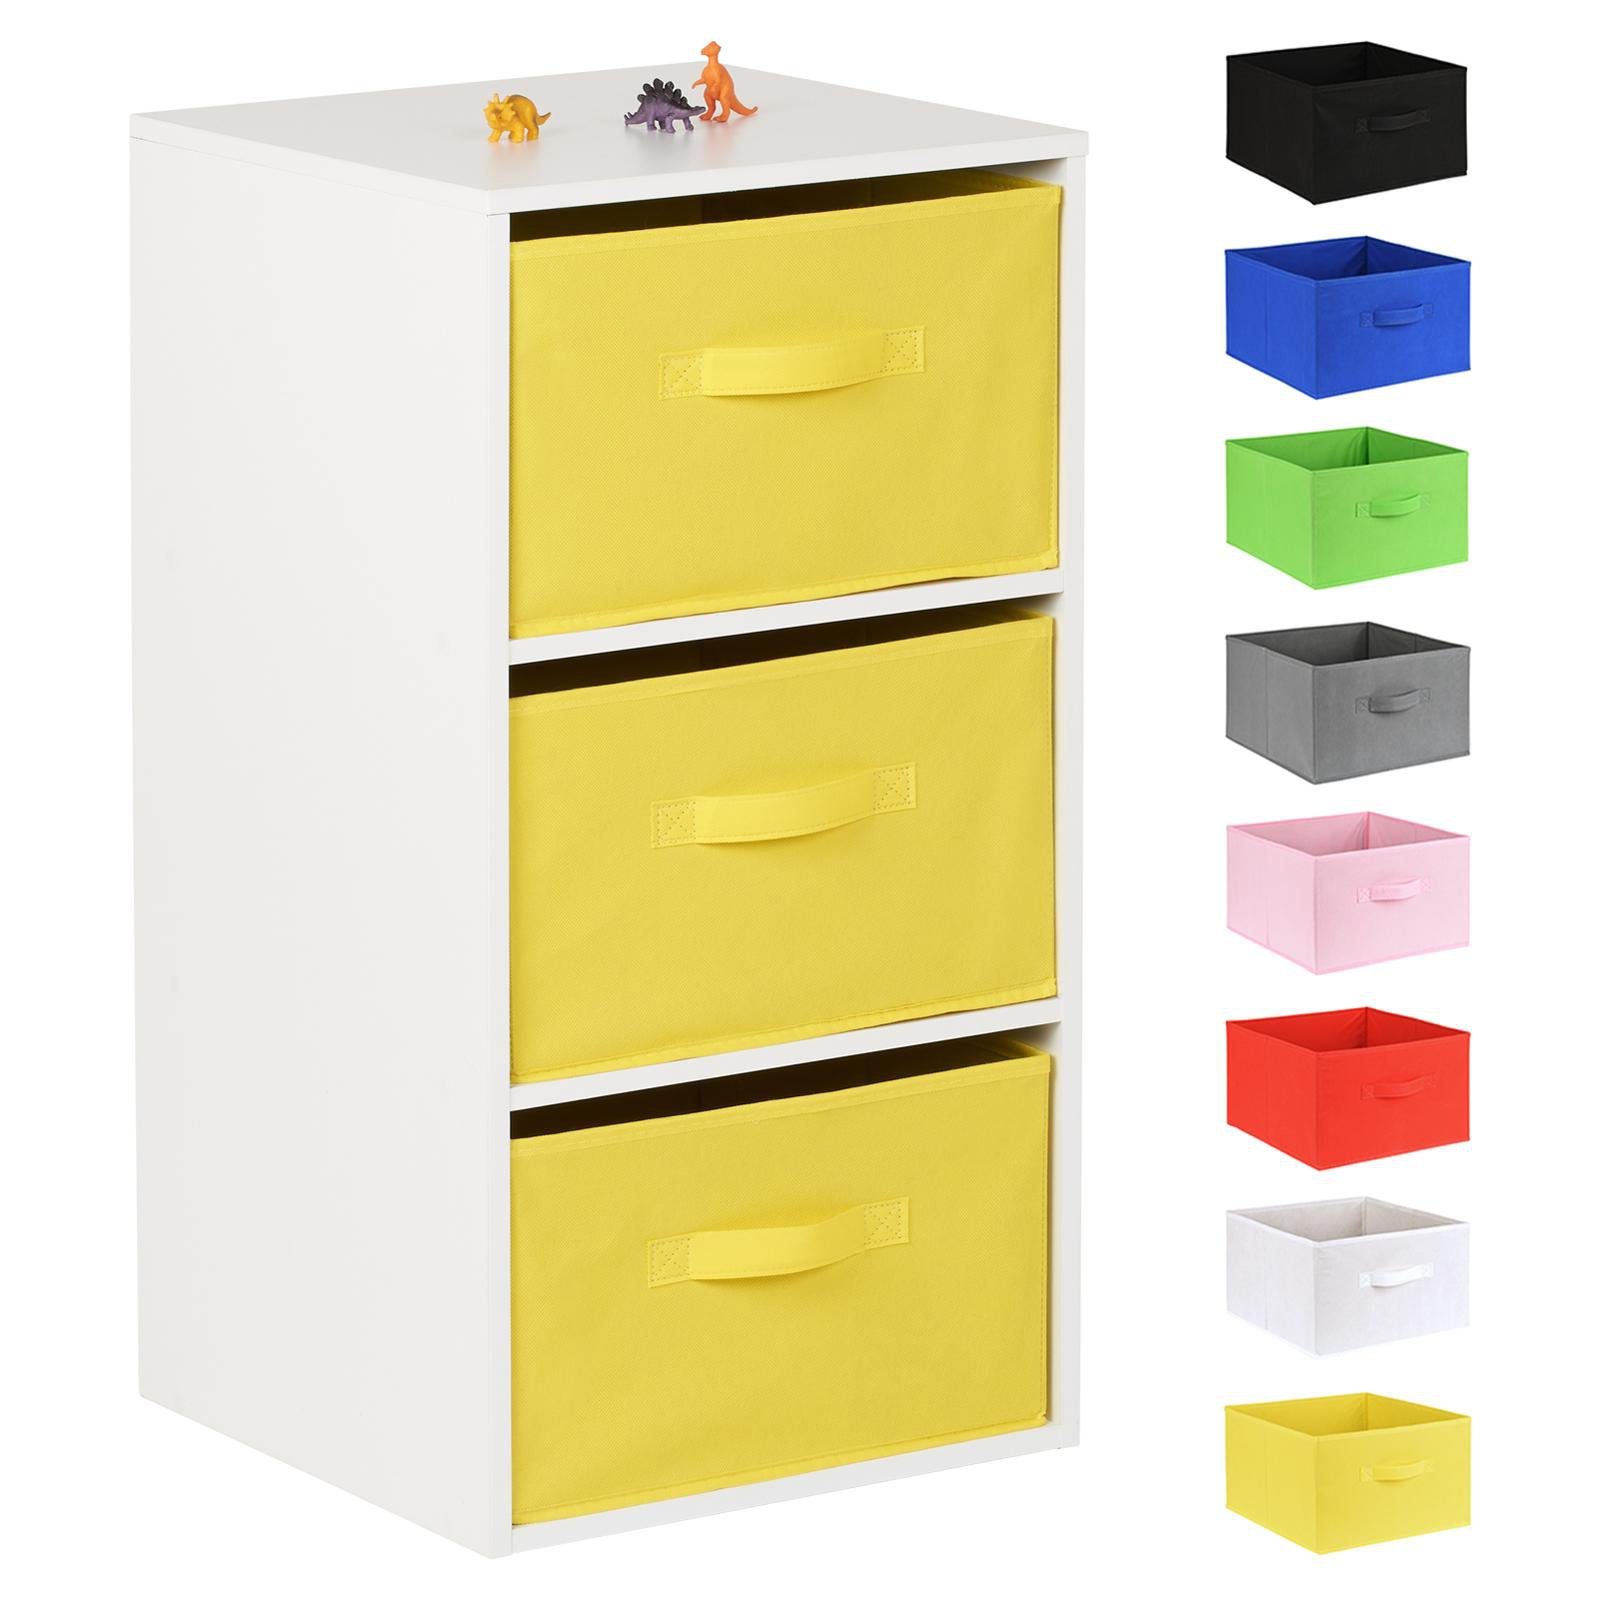 image-Hartleys White 3 Cube Kids Storage Unit & 3 Handled Box Drawers - Yellow